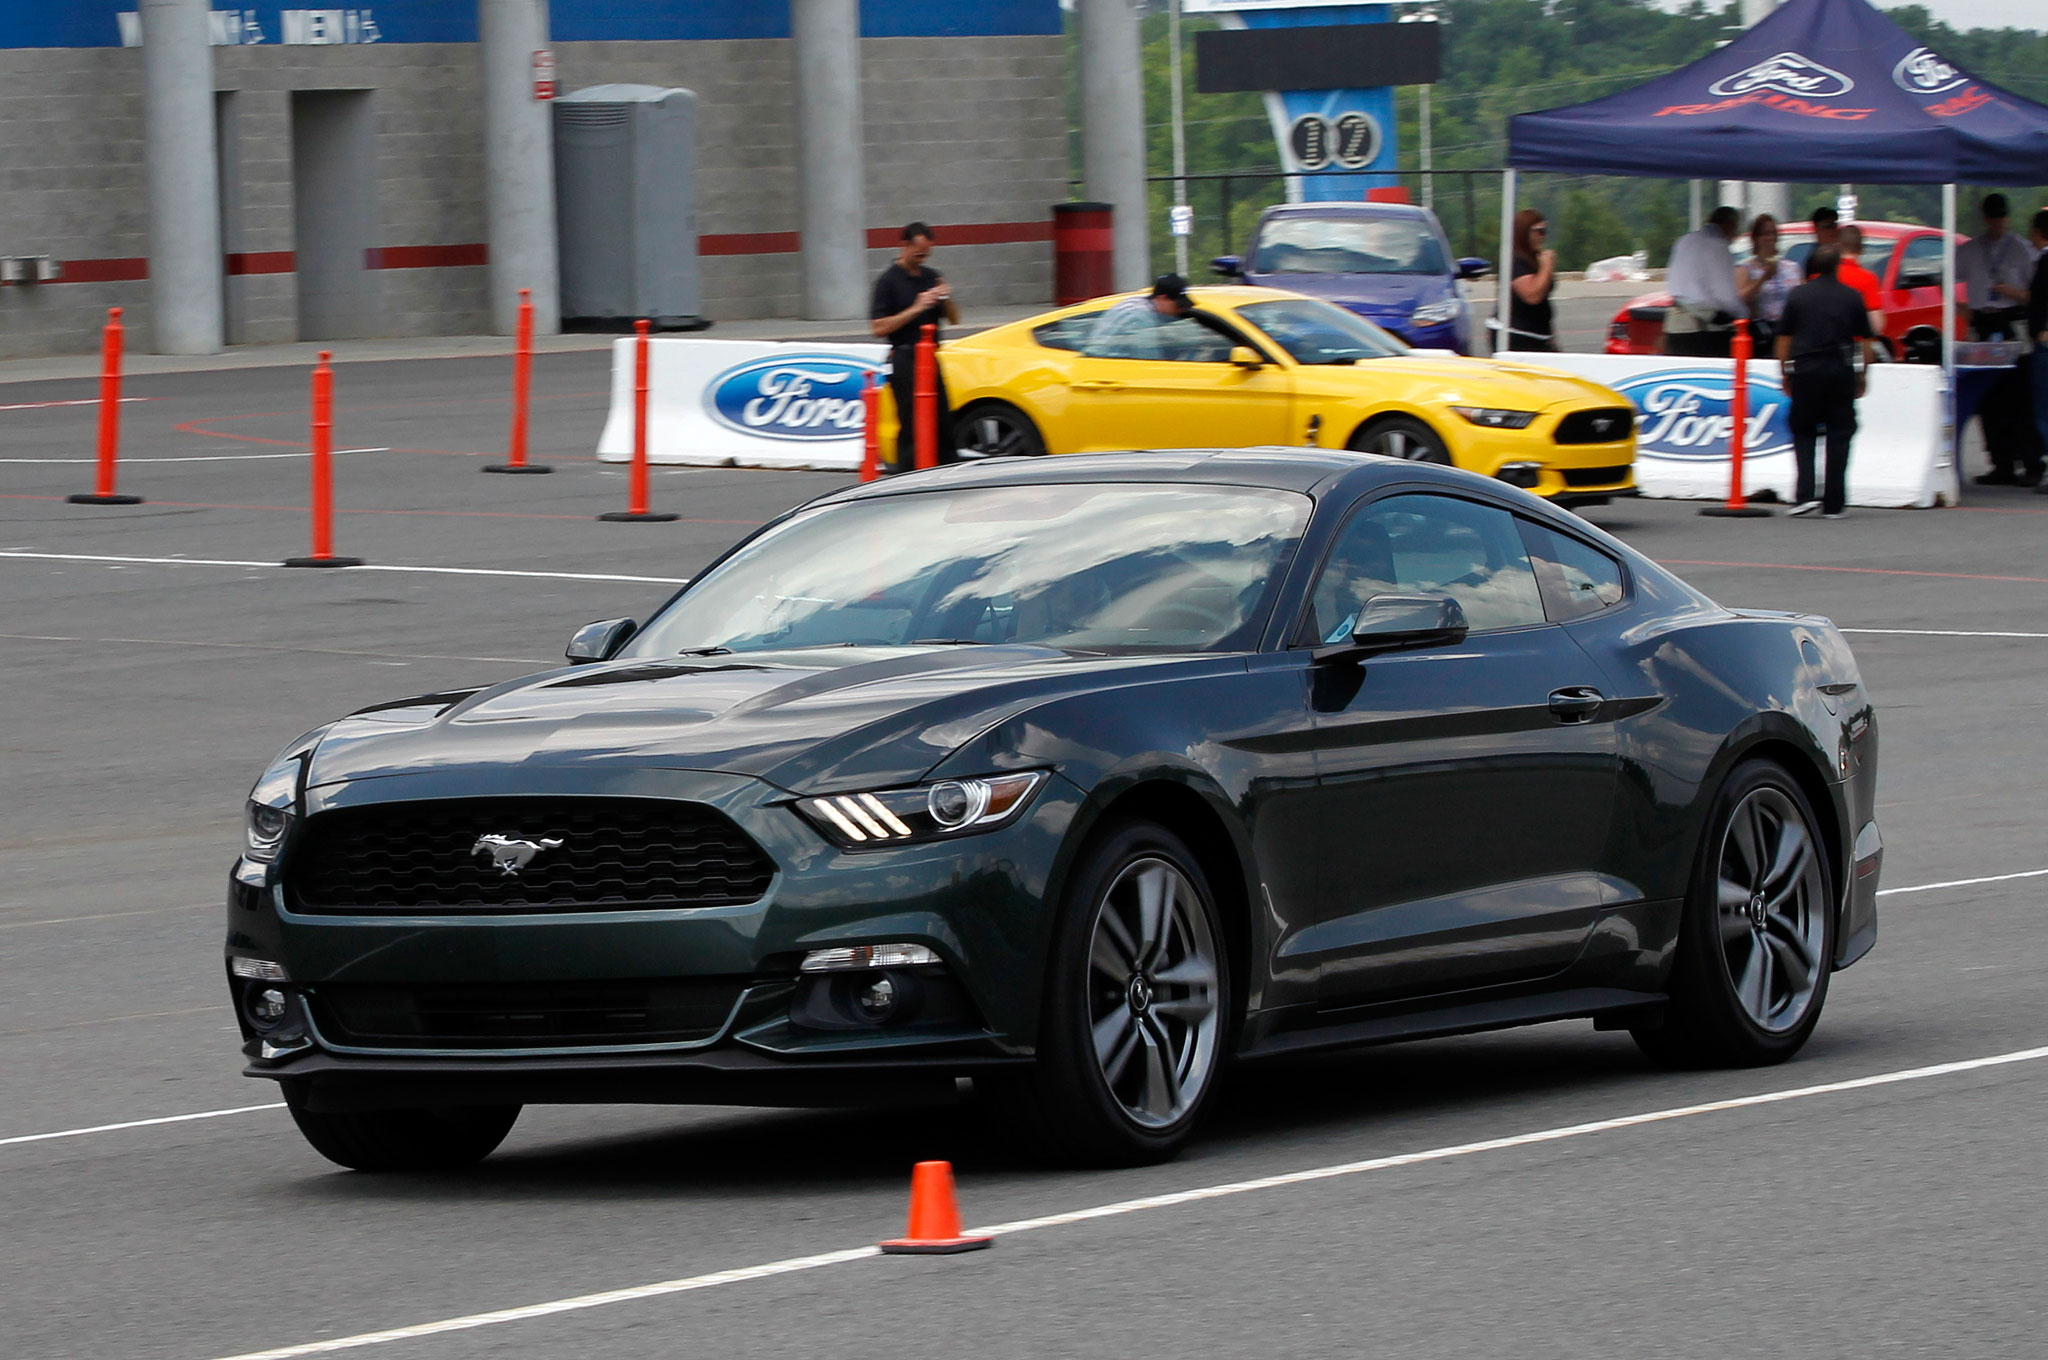 2015 Mustang Ecoboost >> 2015 Ford Mustang Ecoboost 2 3 First Ride Motor Trend